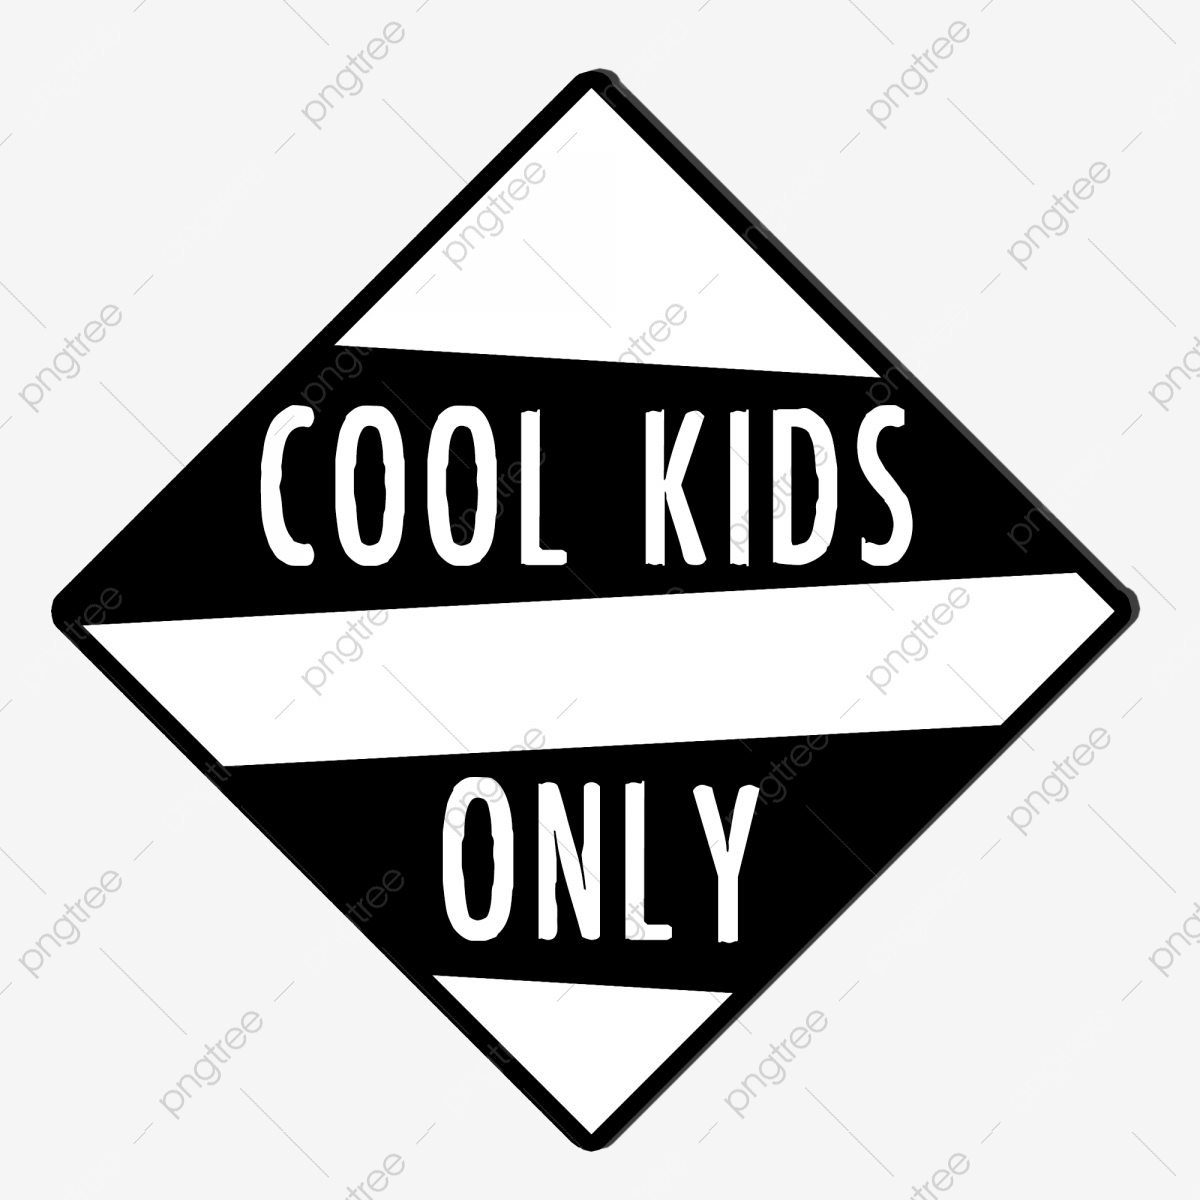 Cool Kids Only, Cool, Only, Graphic PNG Transparent Clipart Image.